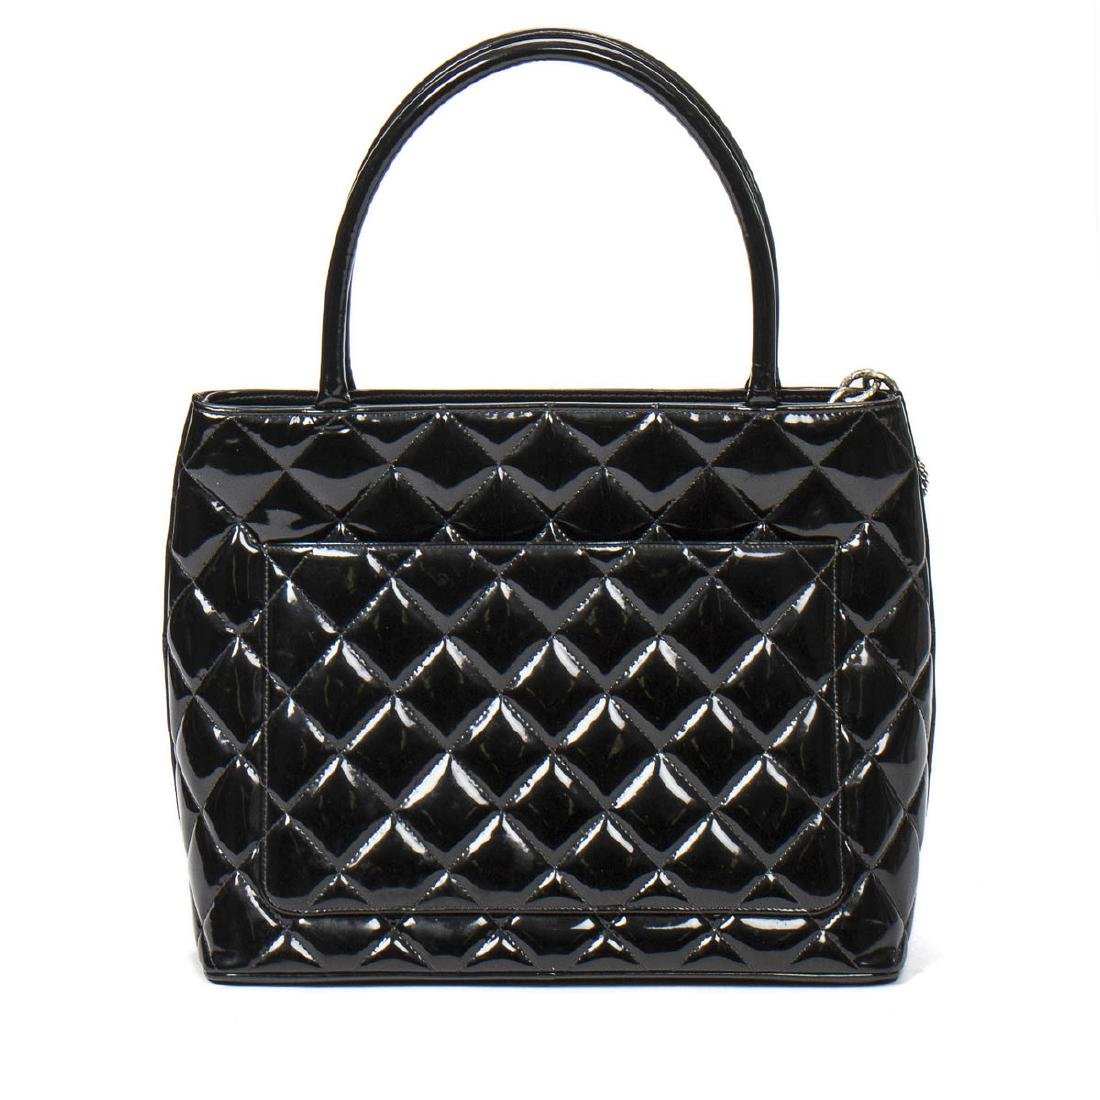 Chanel Medallion in Black Patent Quilted Leather - 5